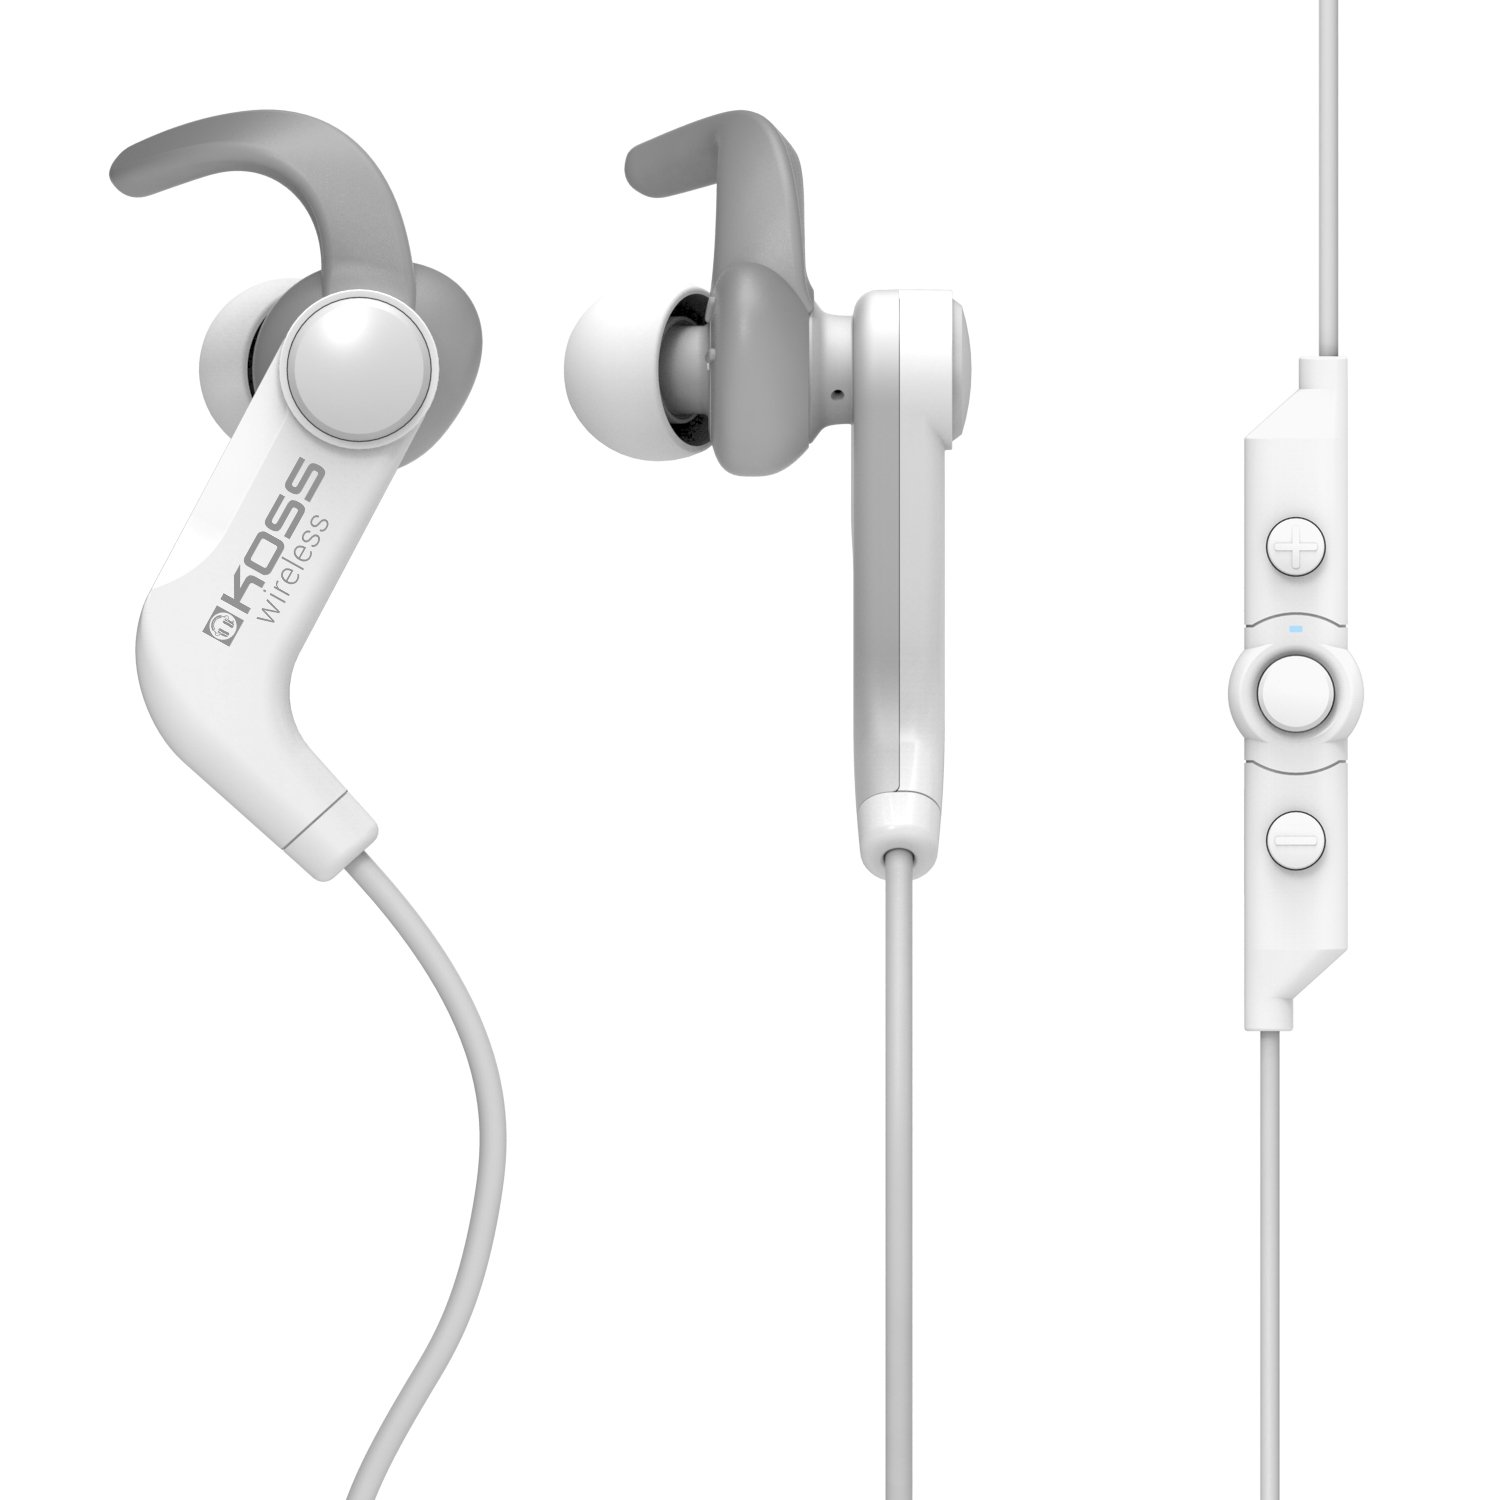 Koss Bt190iw Wireless Bluetooth Earbuds In Line Otto Headset Wiring Diagram Touch Controls Sweat Resistant Three Cushion Sizes Included 6 Hour Battery Life Light Weight White Headphones Home Audio Theater